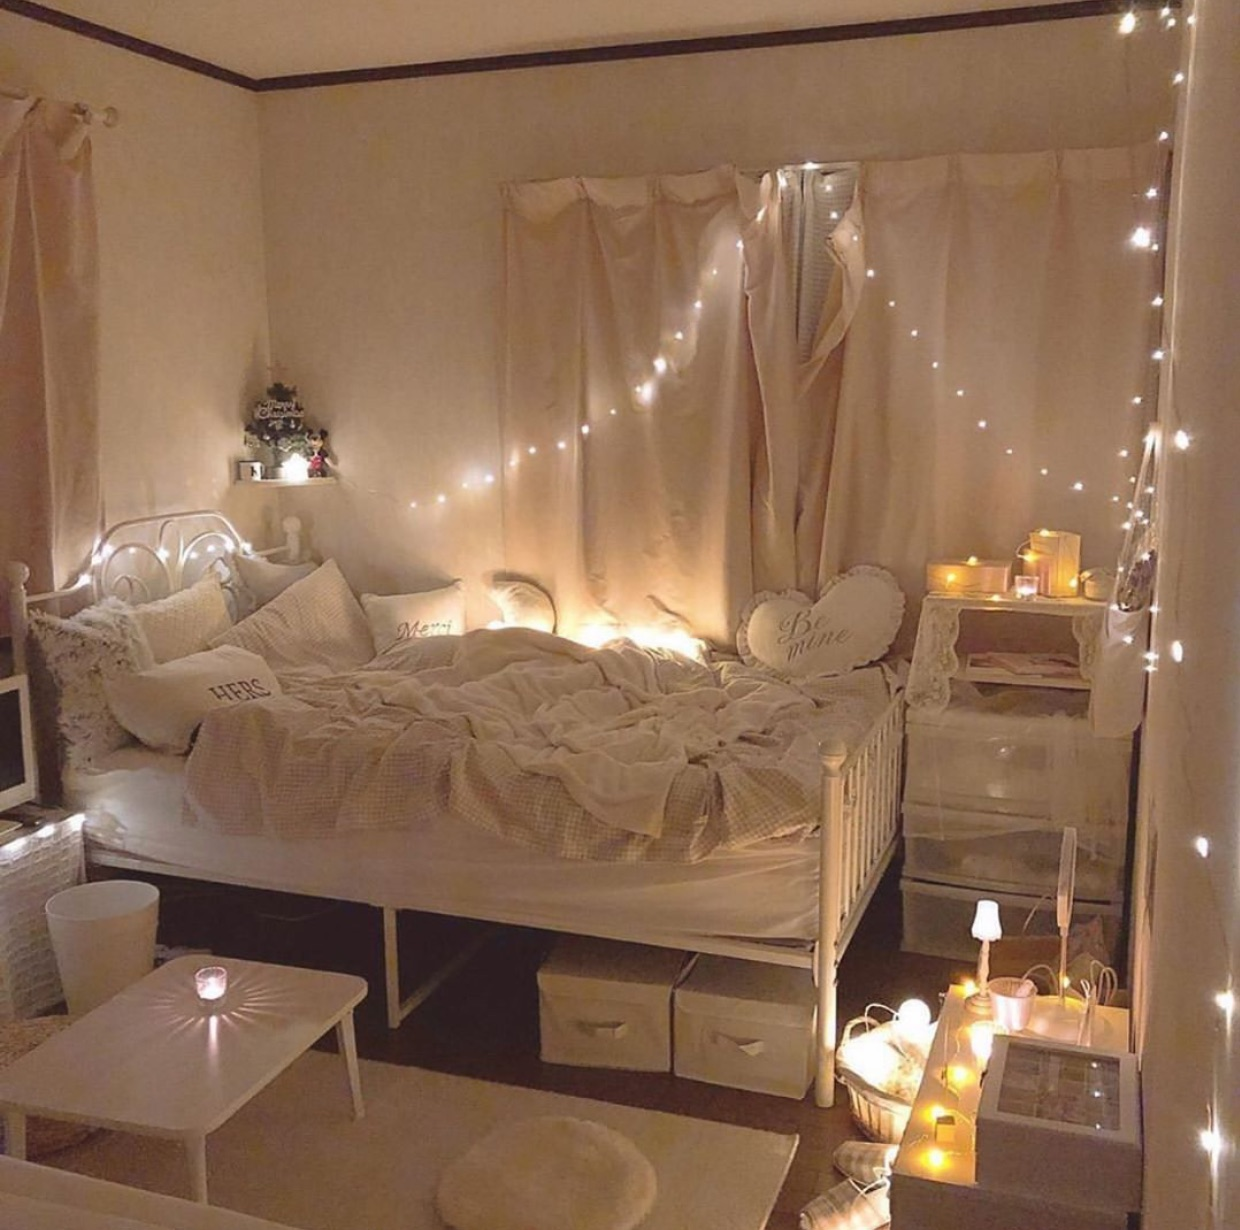 iCozyi ibedroomi decor discovered by grace on We Heart It